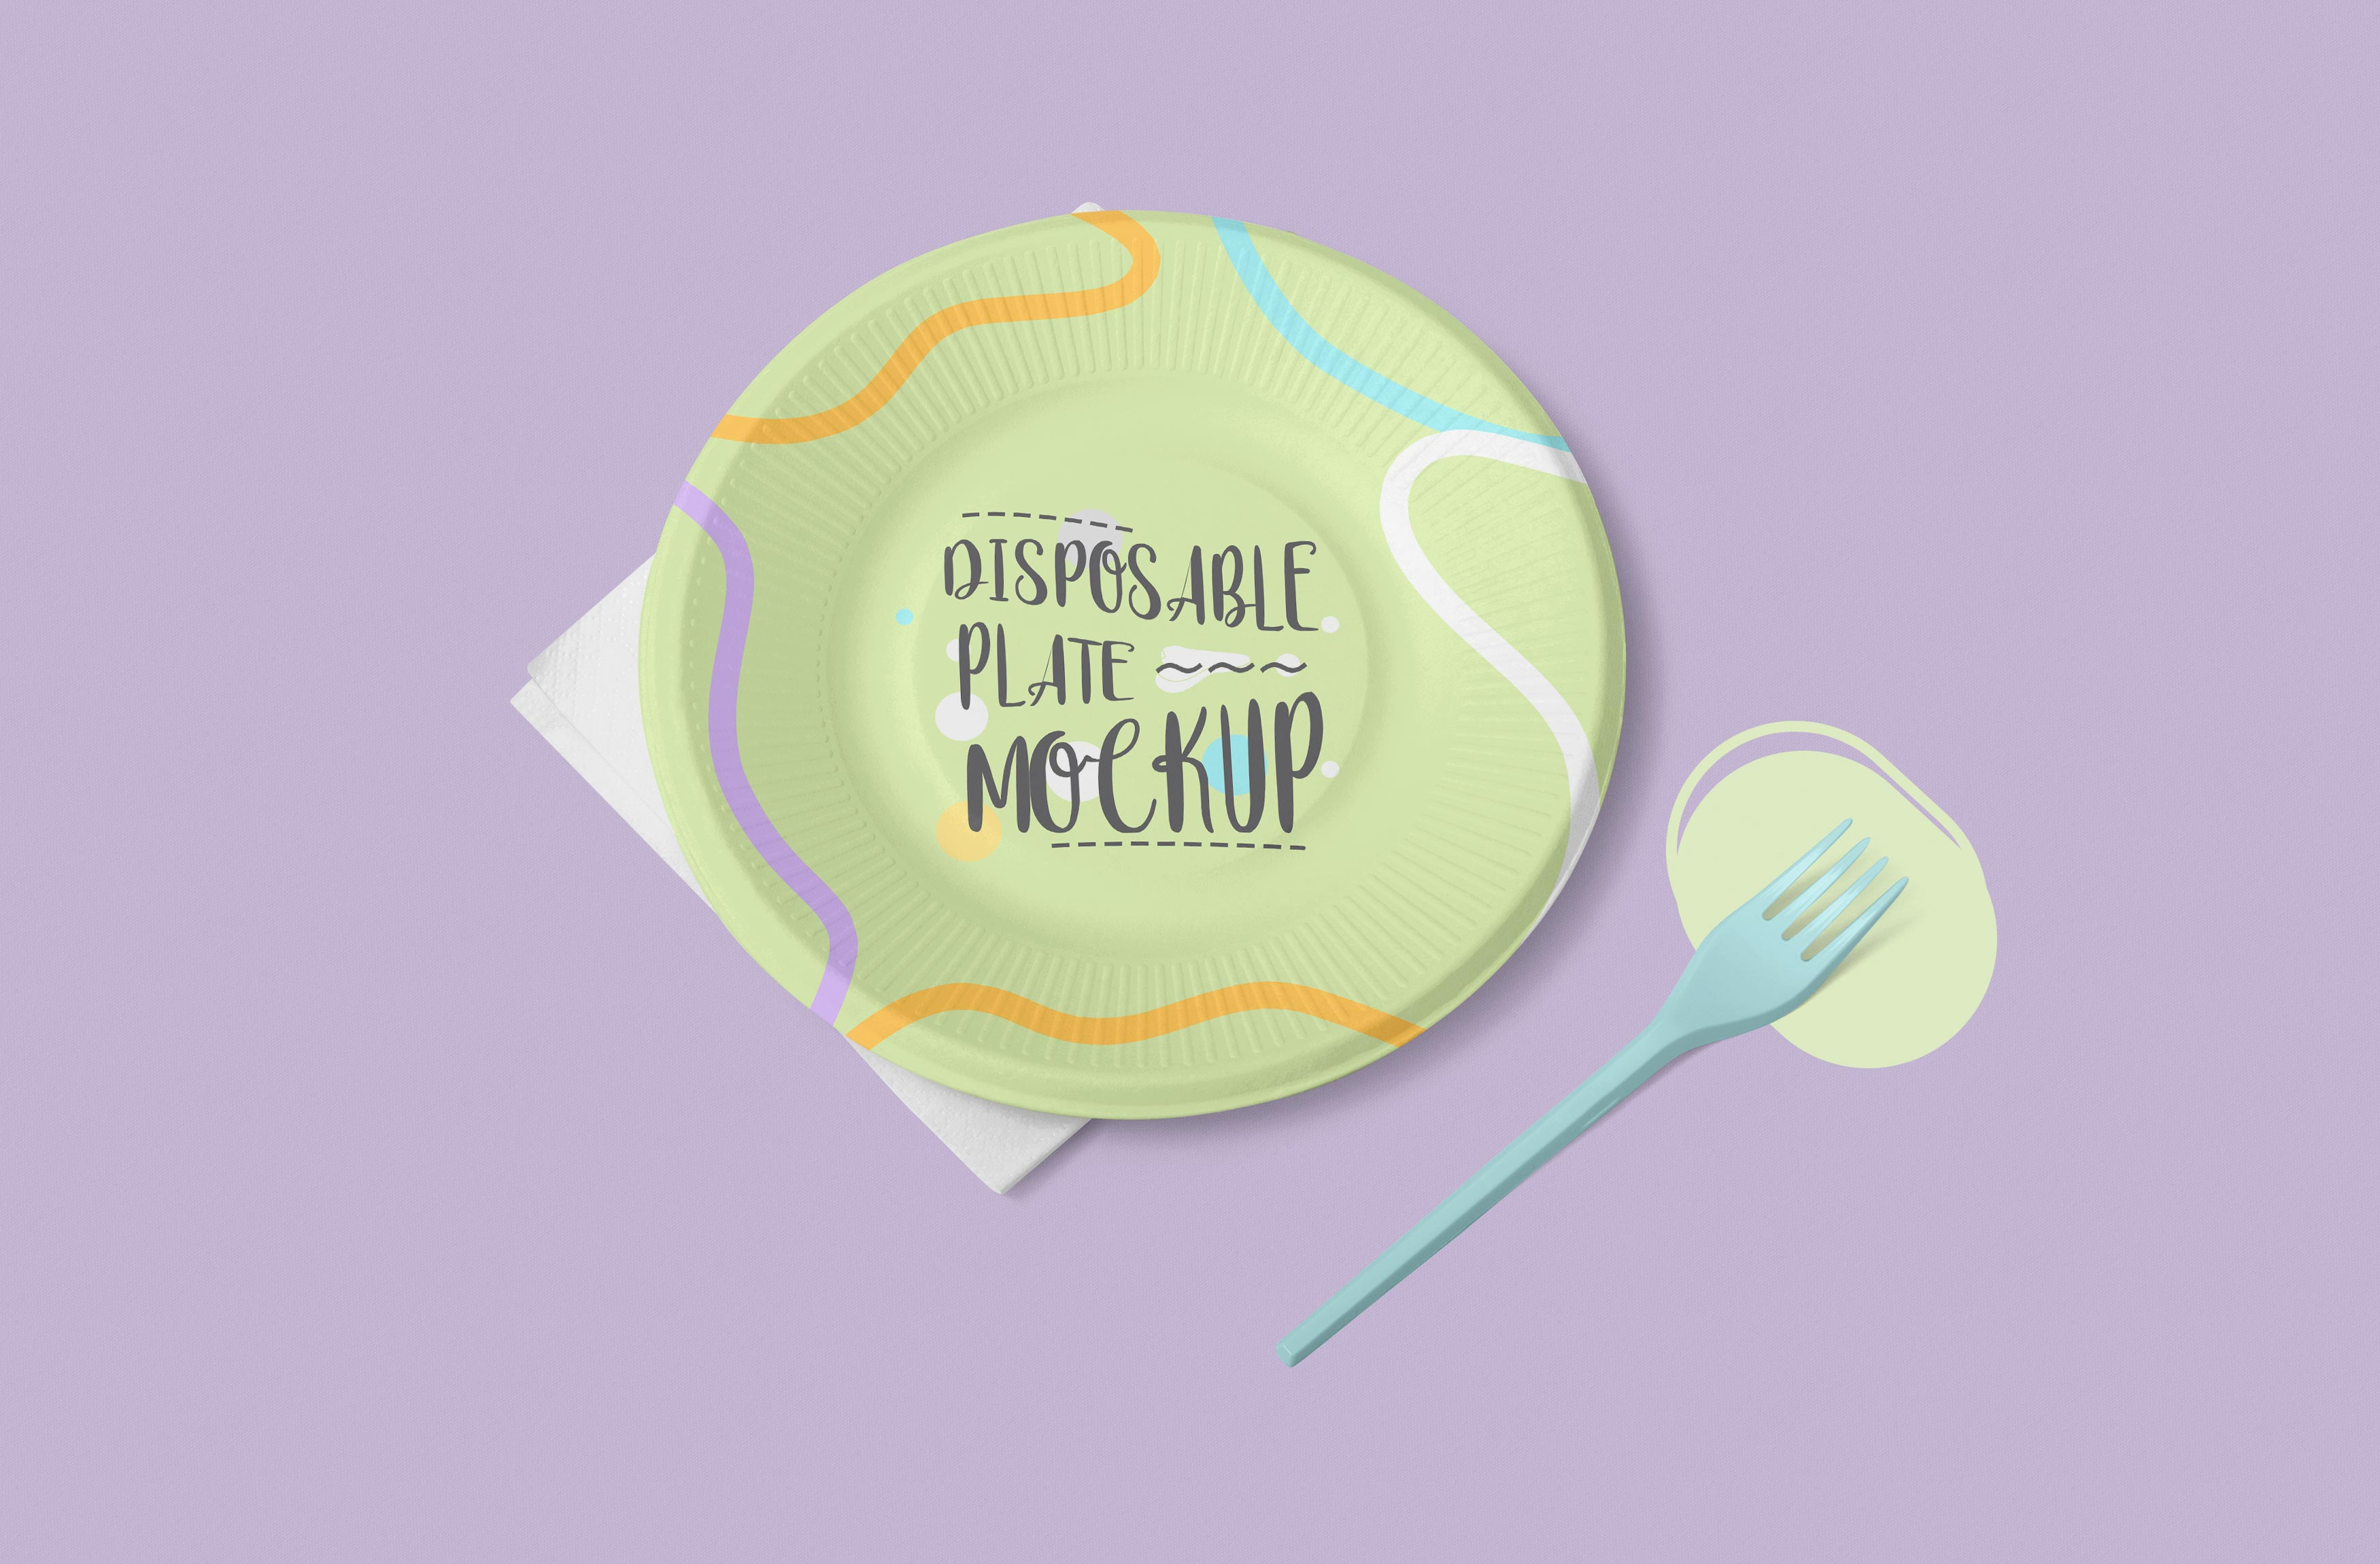 disposable-plate-mockup-02.jpg